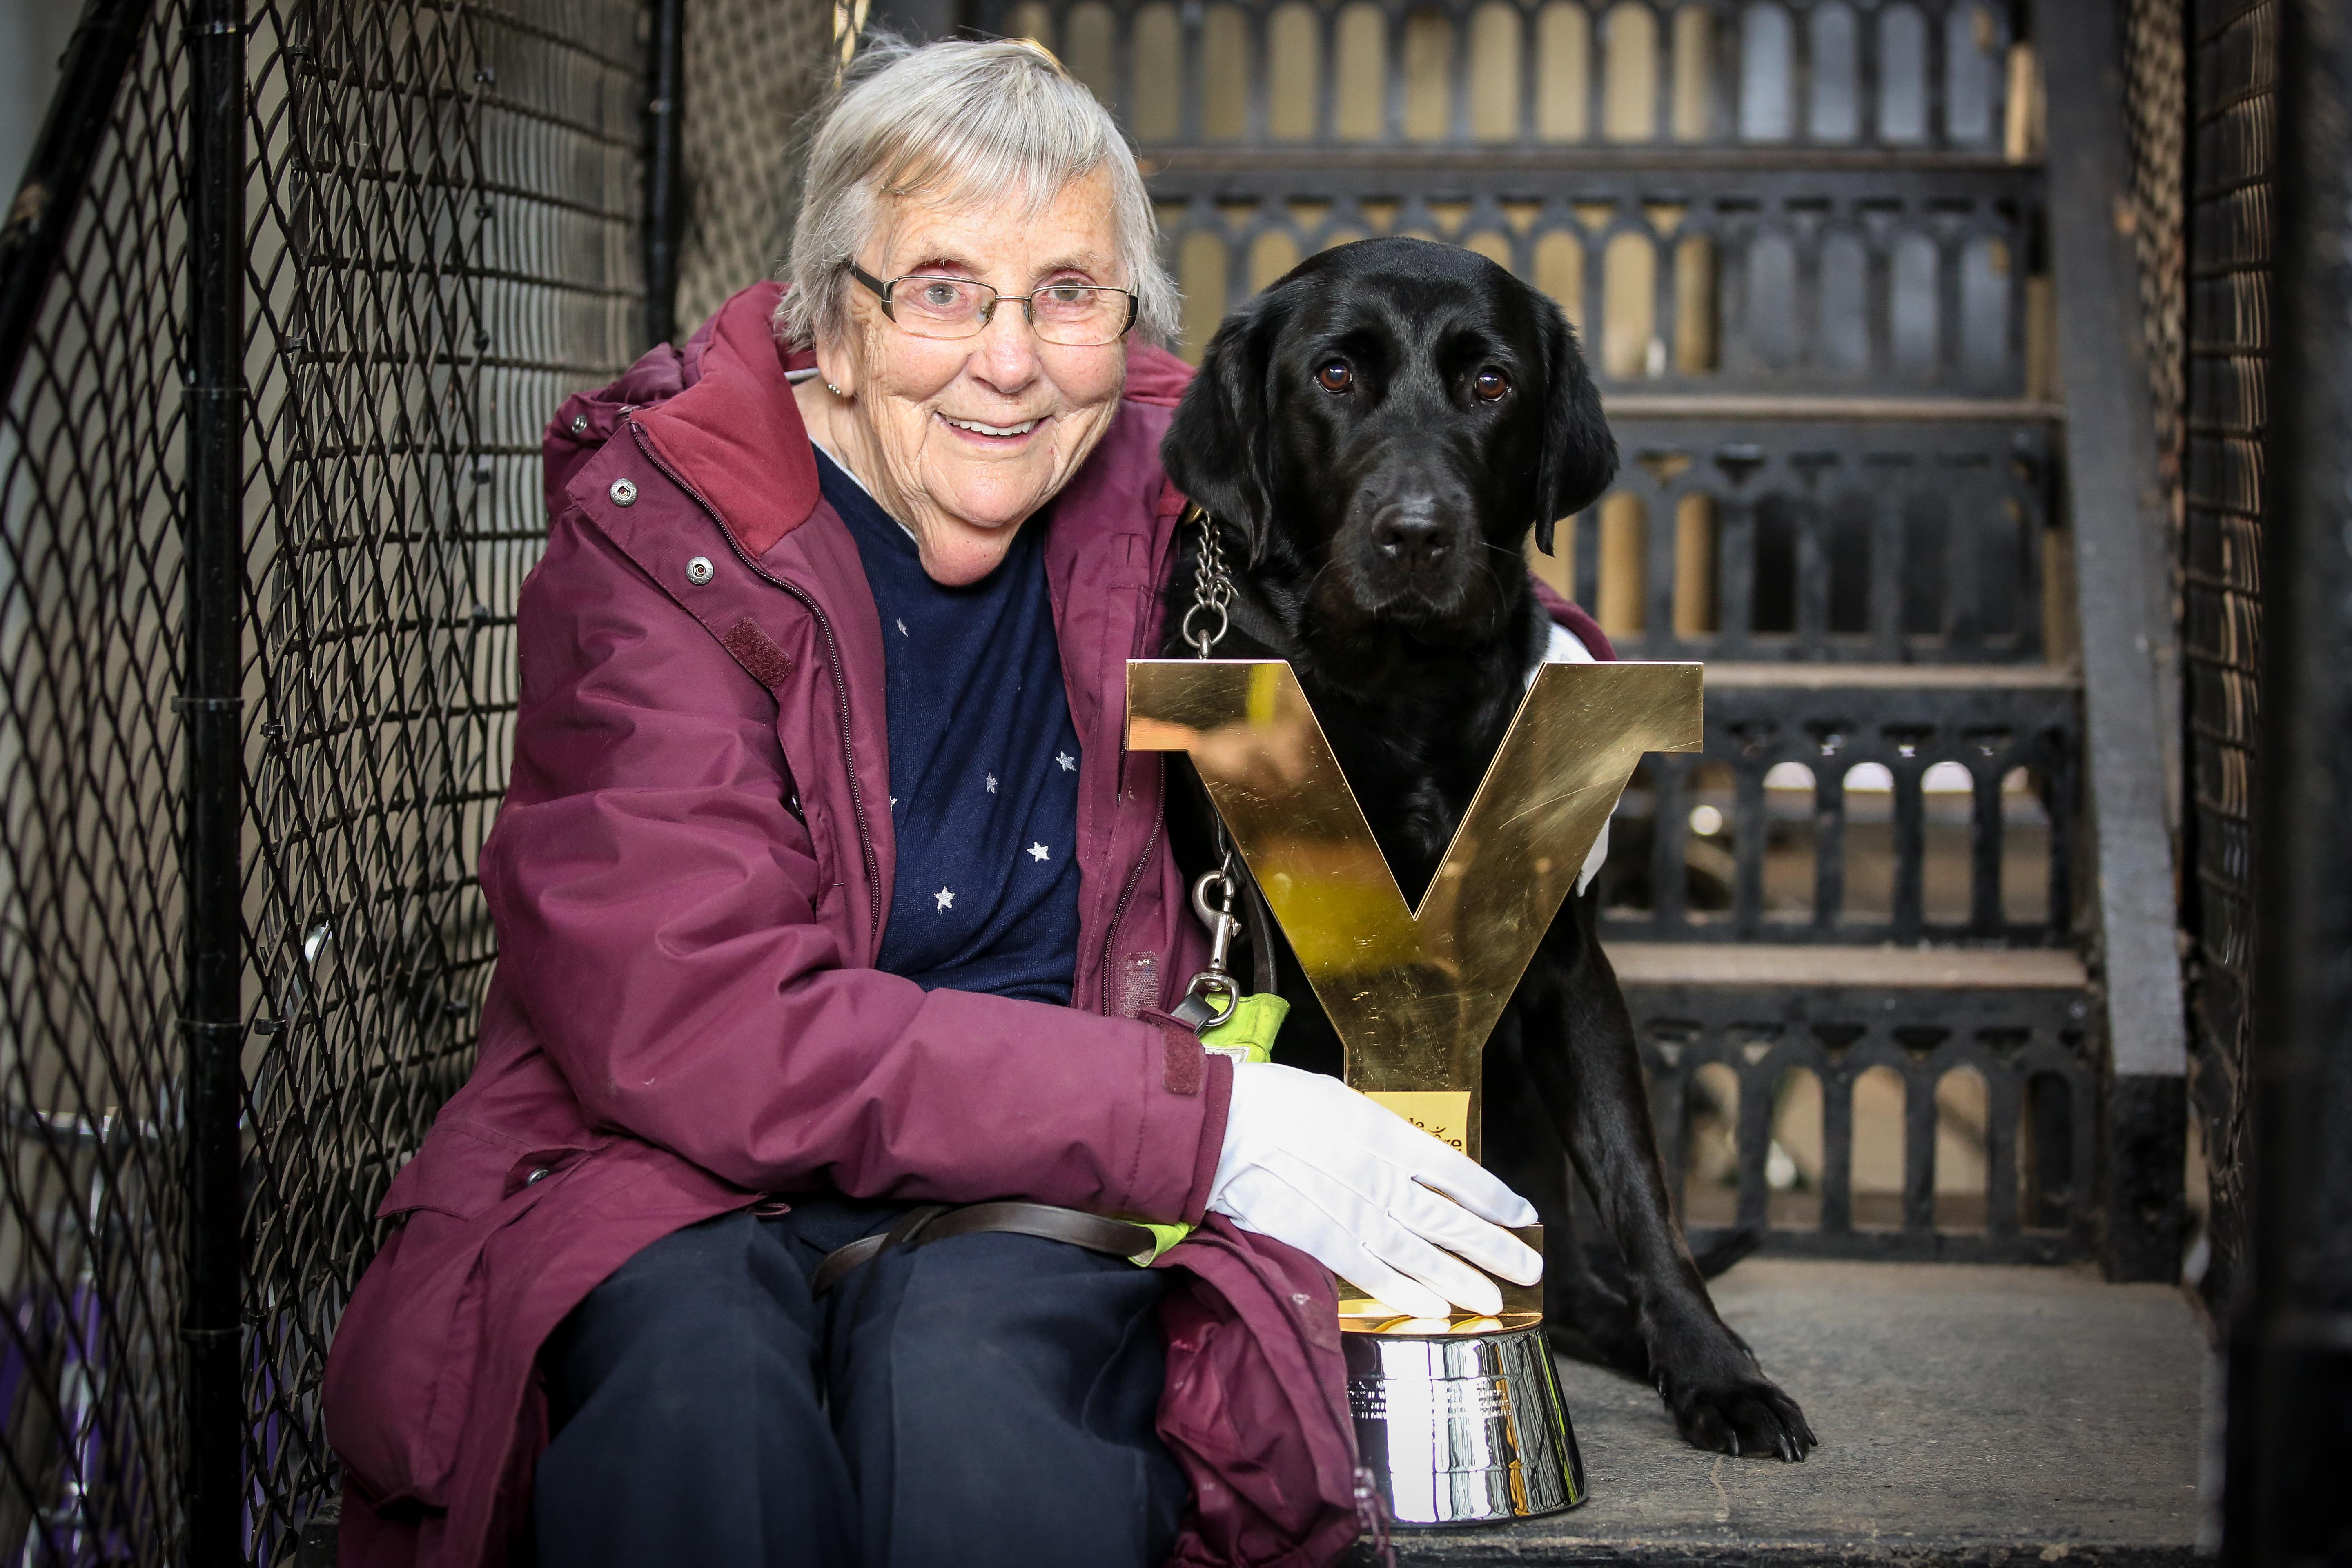 Picture of 82 year-old Alice Wilson, a regular user of Scarborough's Yorkshire Bank Bike Library, with the Tour de Yorkshire trophy, accompanied by her guide dog, Quaver. Picture credit: Ceri Oakes Photography